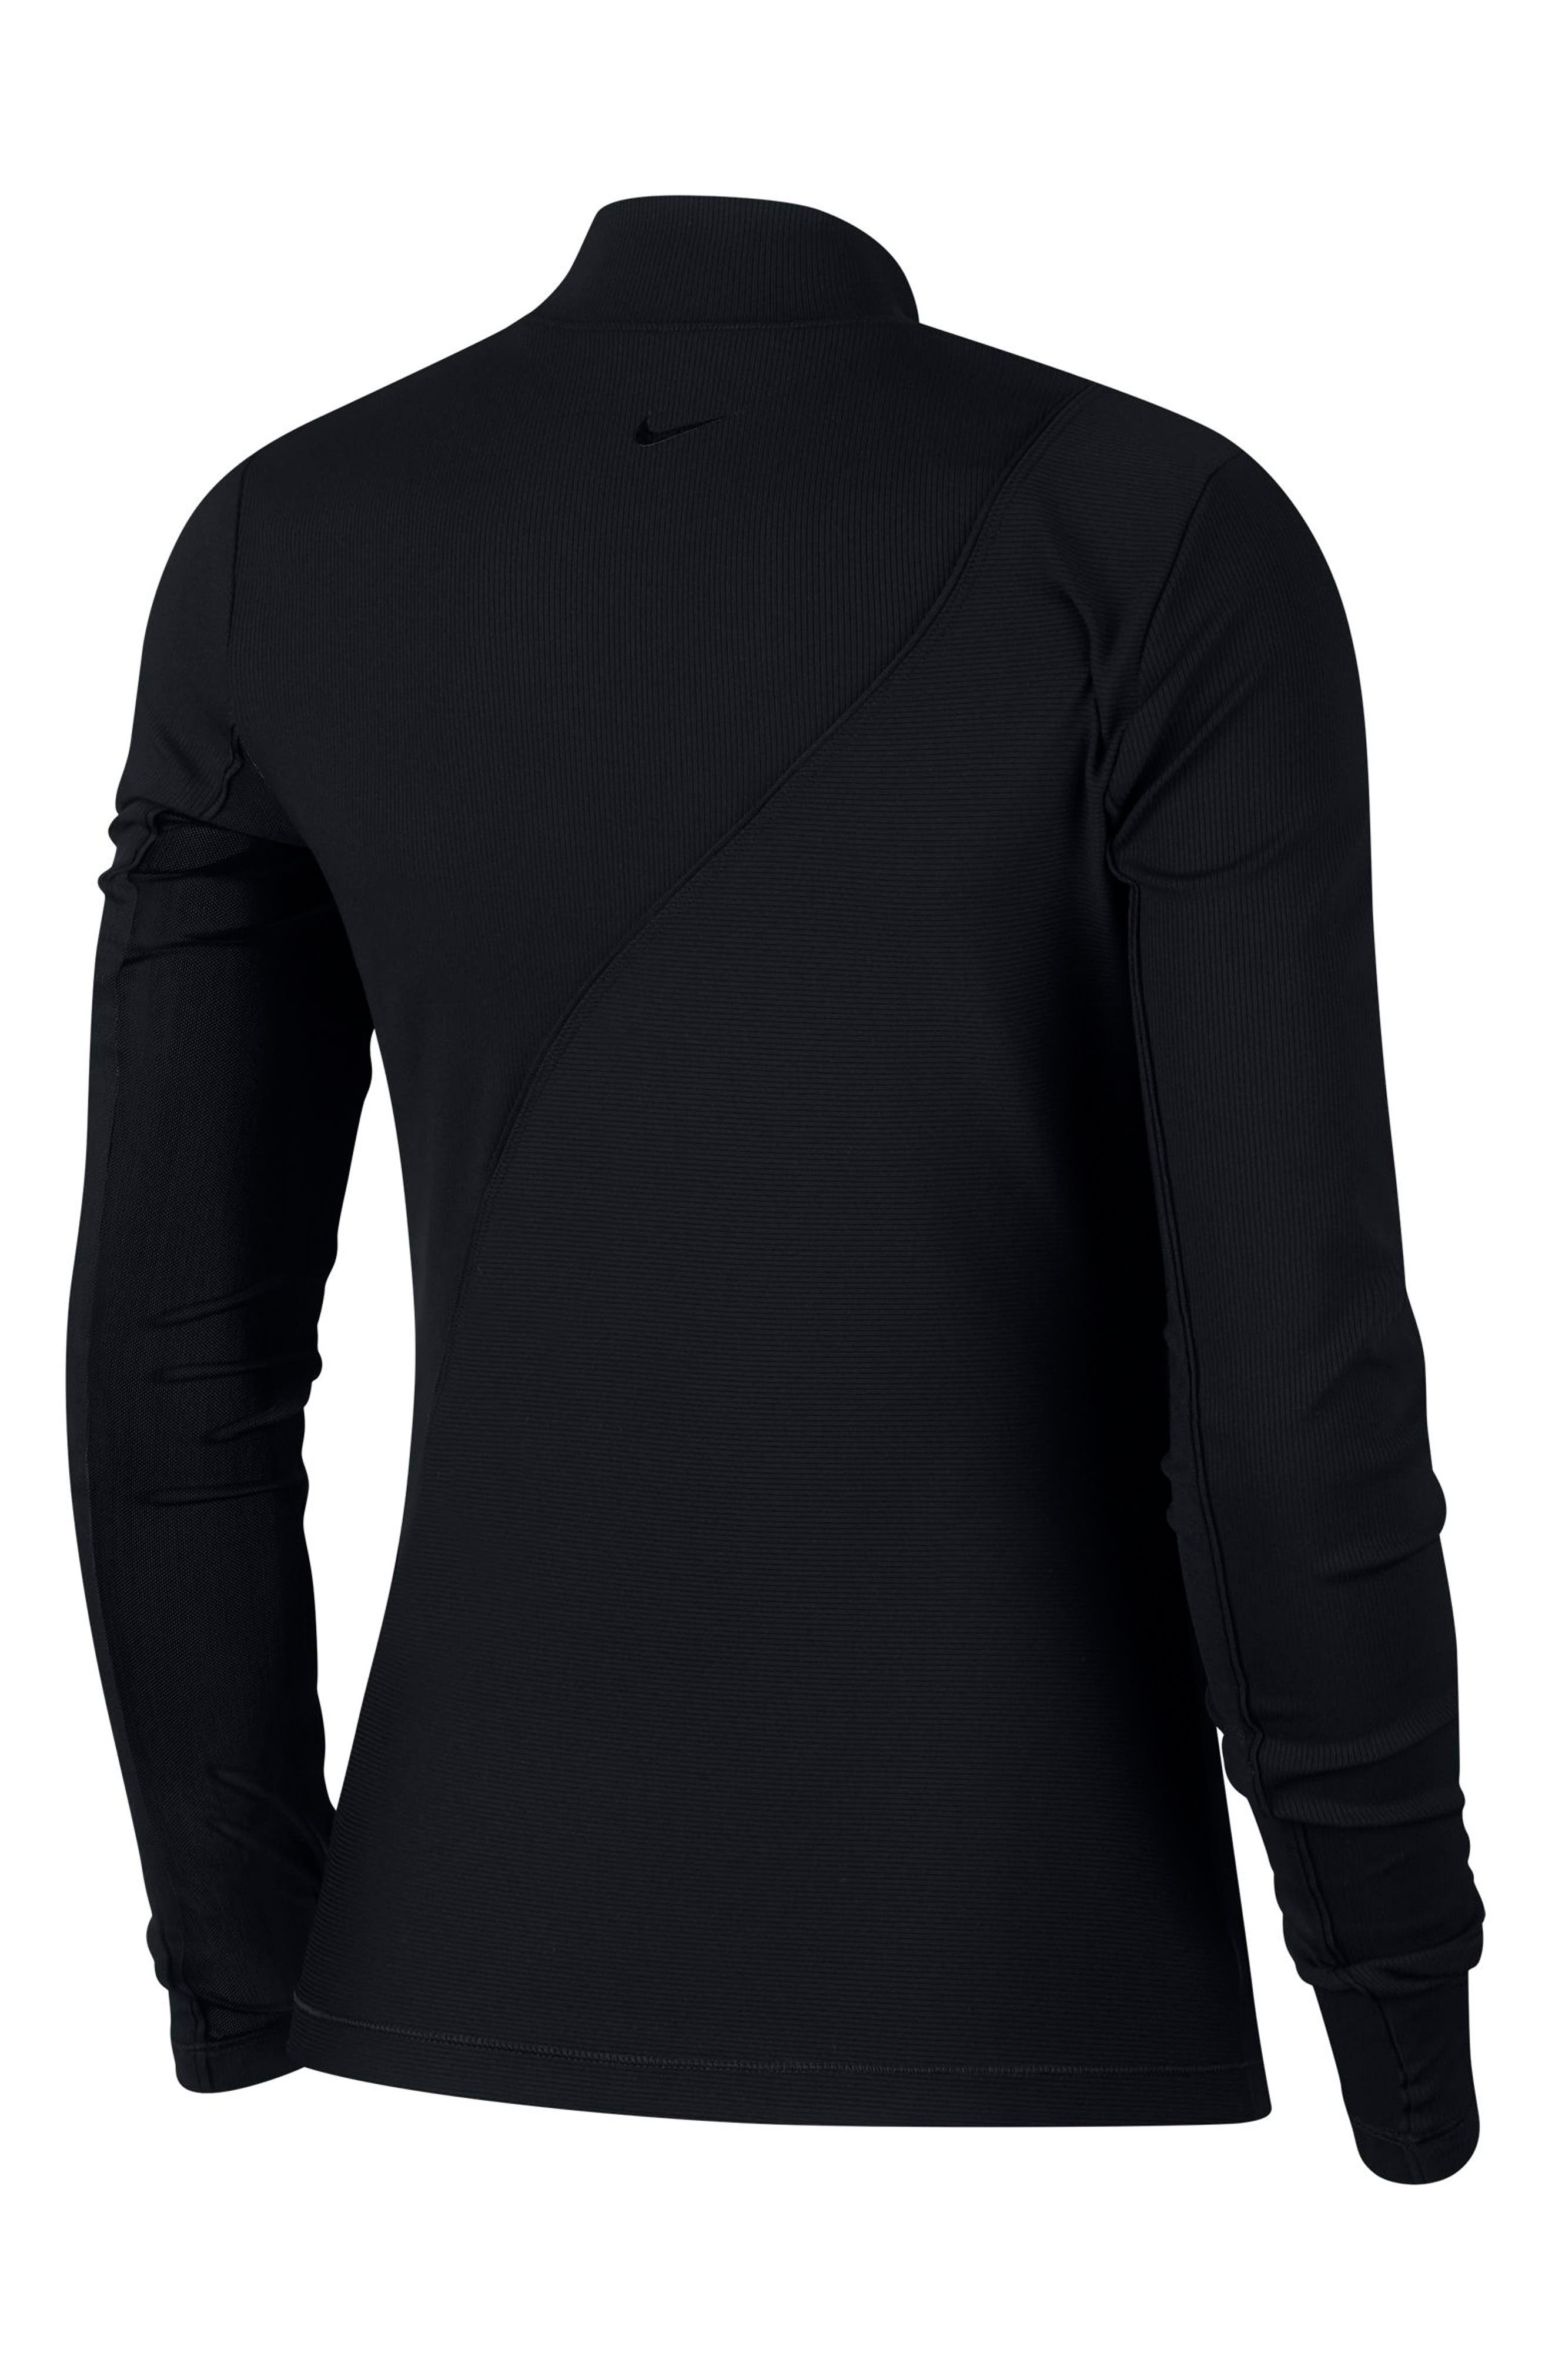 The Nike Pro HyperCool Women's Long Sleeve Ribbed Top,                             Alternate thumbnail 8, color,                             BLACK/ CLEAR